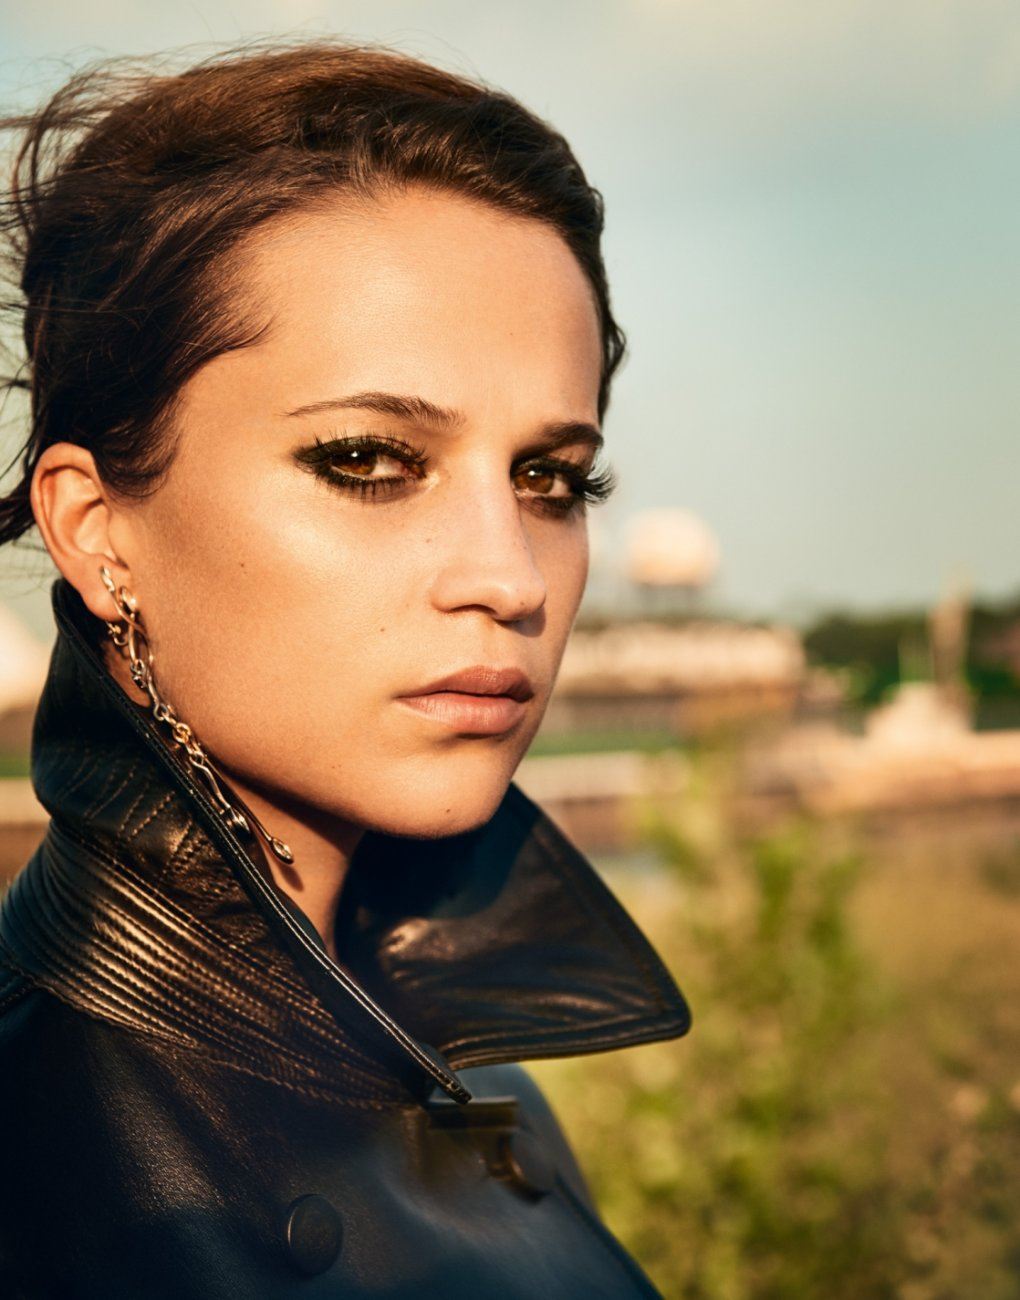 glare - gorgeous alicia vikander (50+ photos)